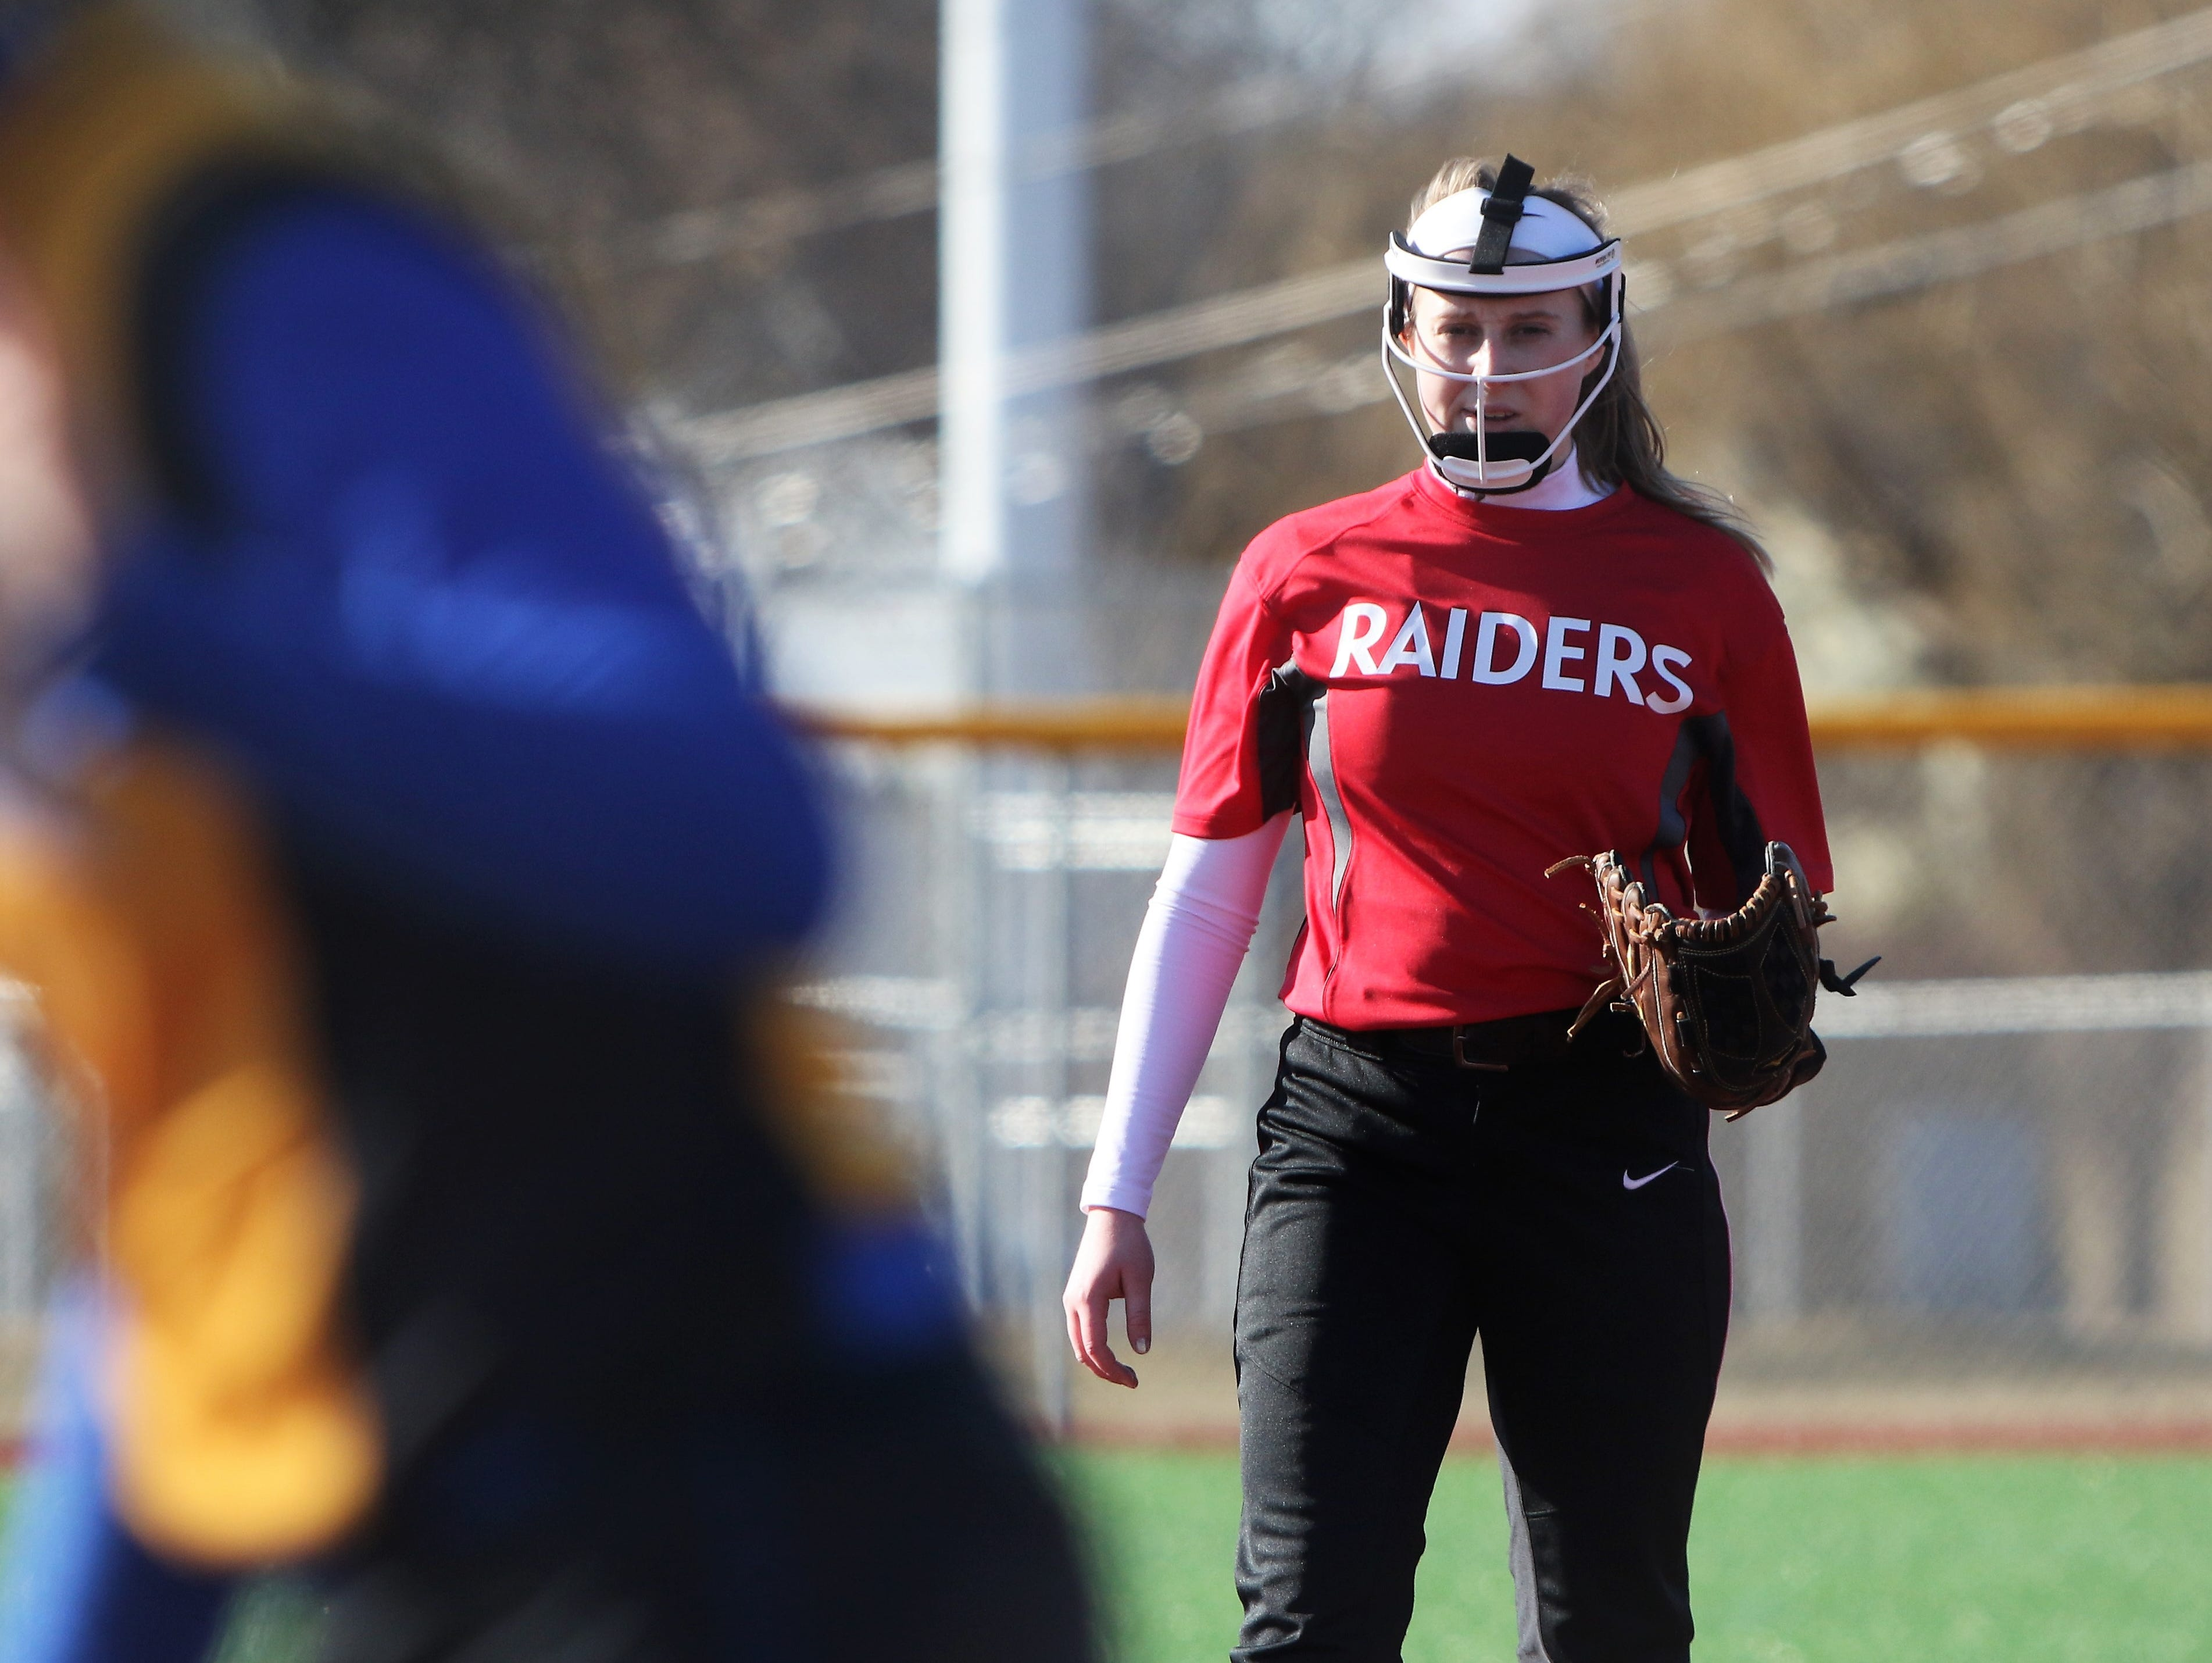 Wauwatosa East pitcher Stasia Raebel looks in for a signal from her catcher during a season-opening game against Catholic Memorial on March 19, 2019.